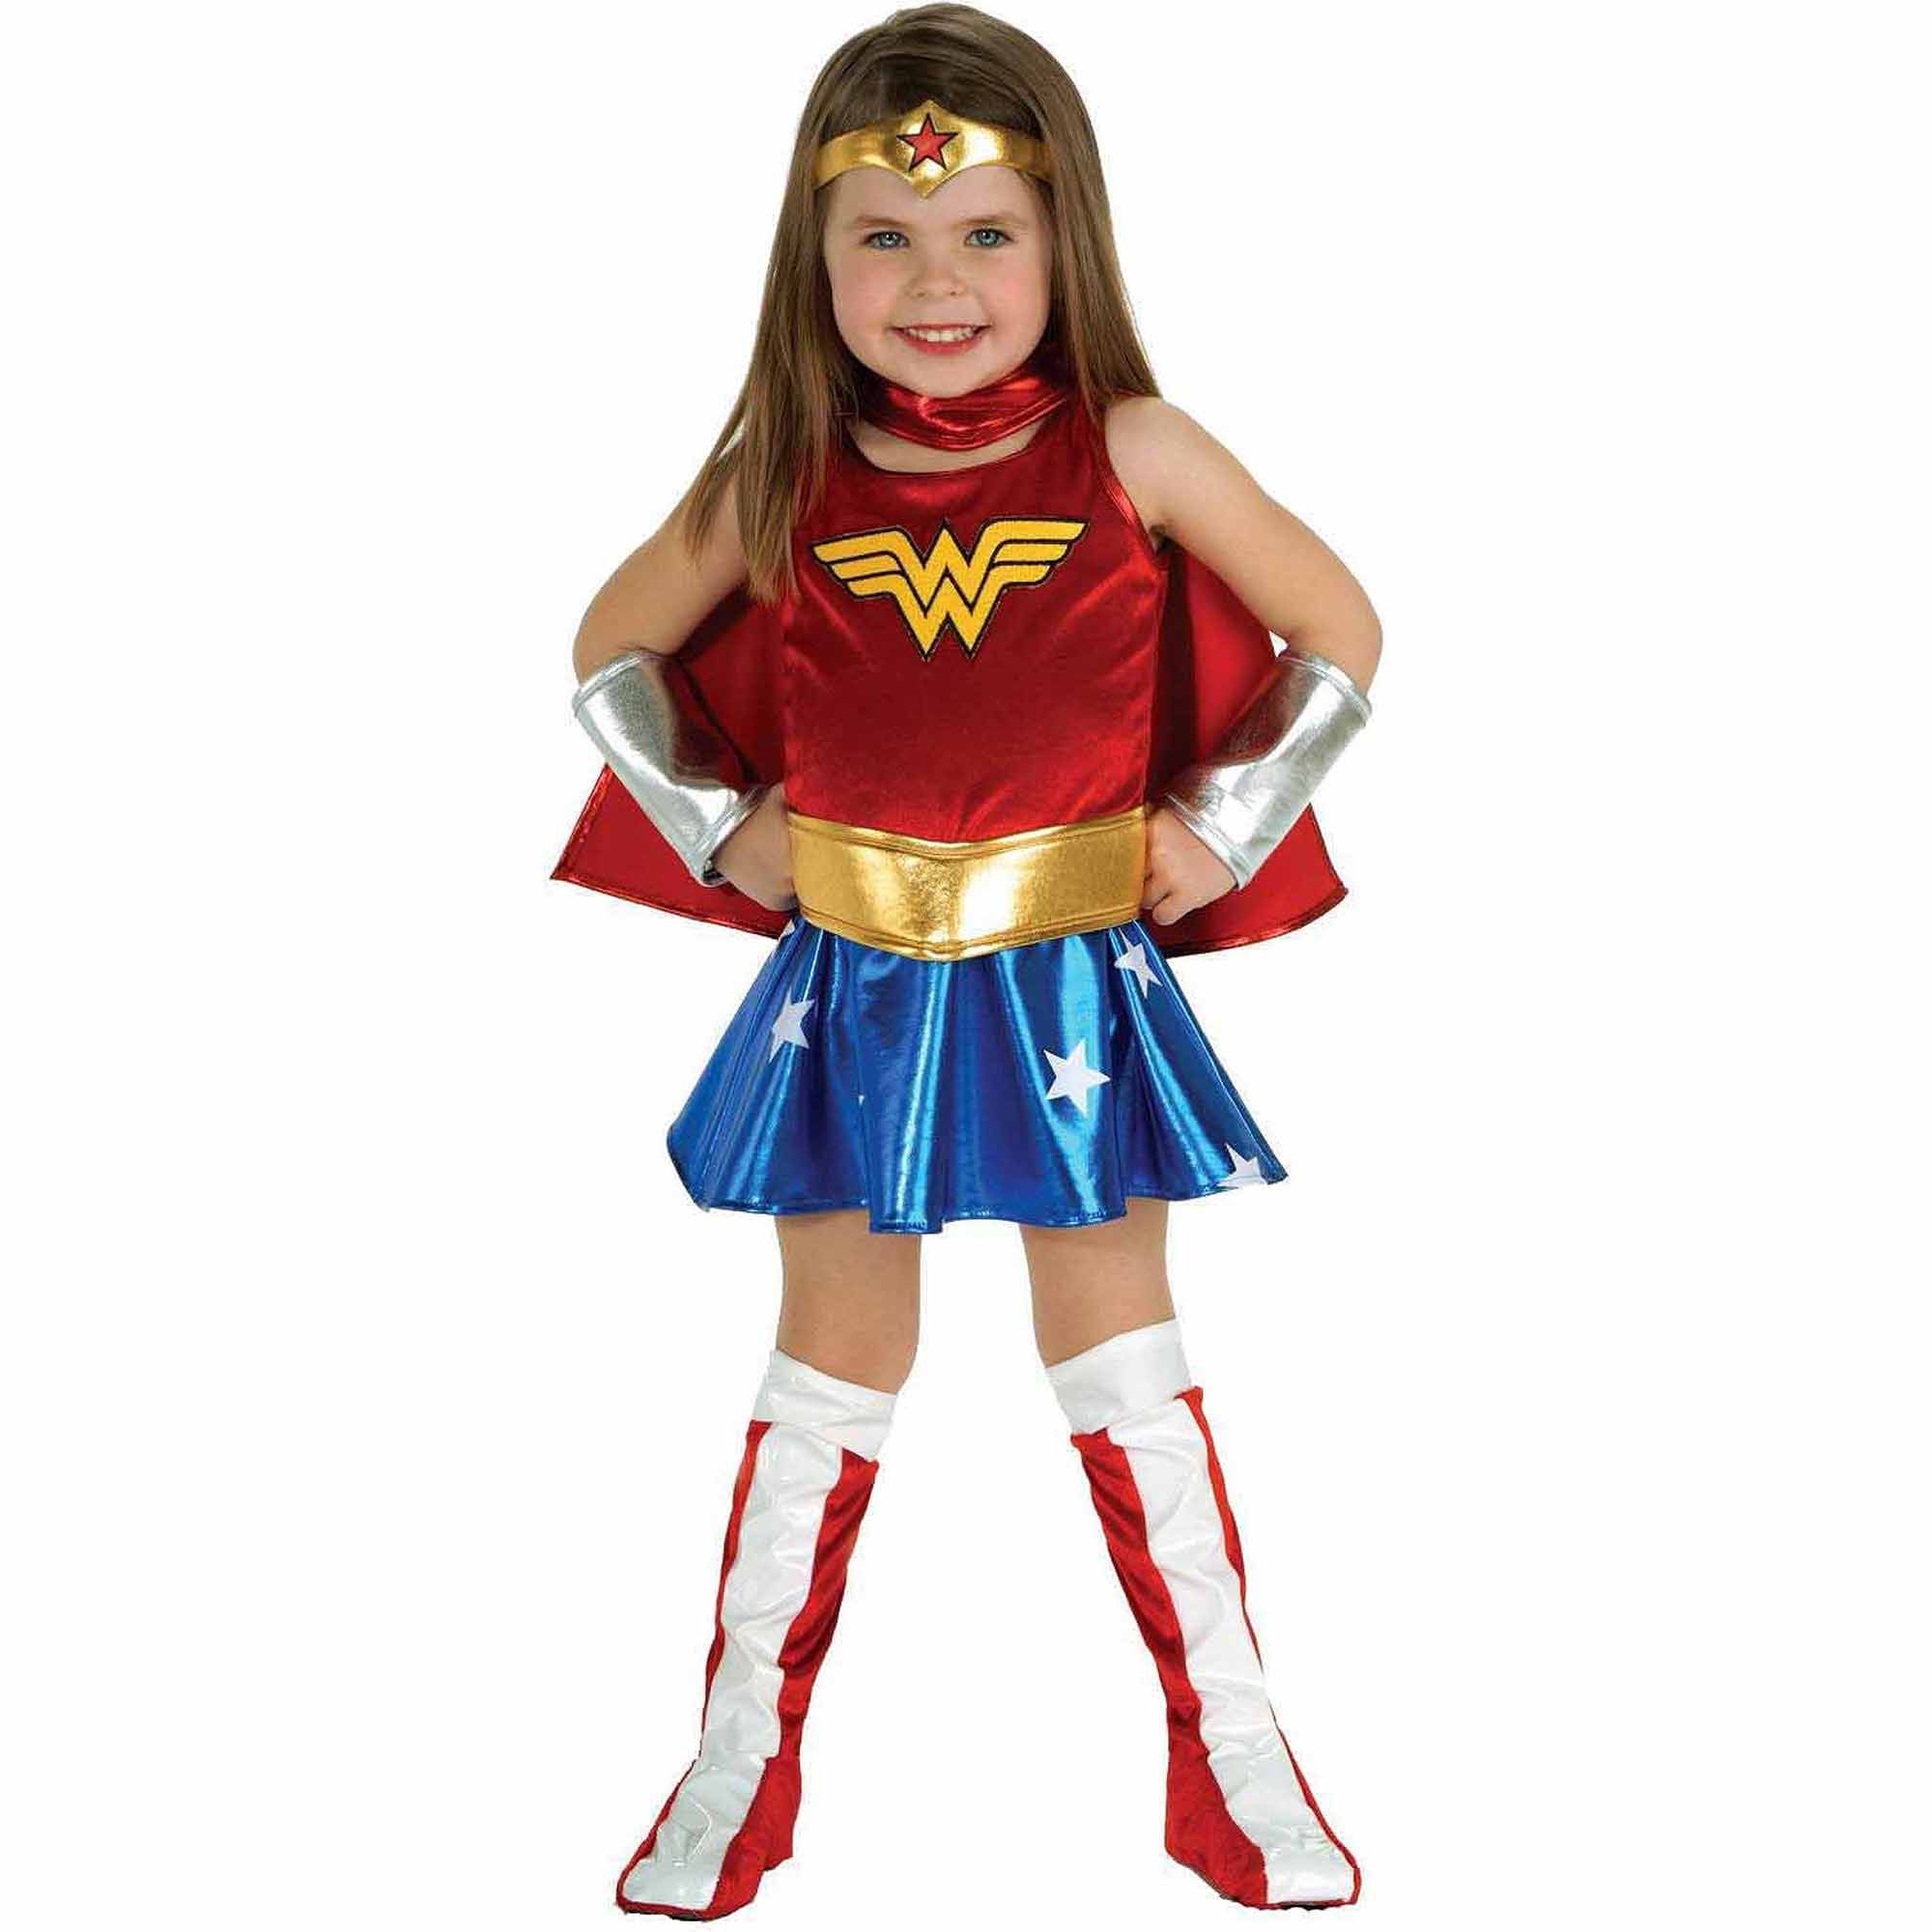 Wonder Woman Toddler Halloween Costume, (2T- 4T) | Birthday Party ...